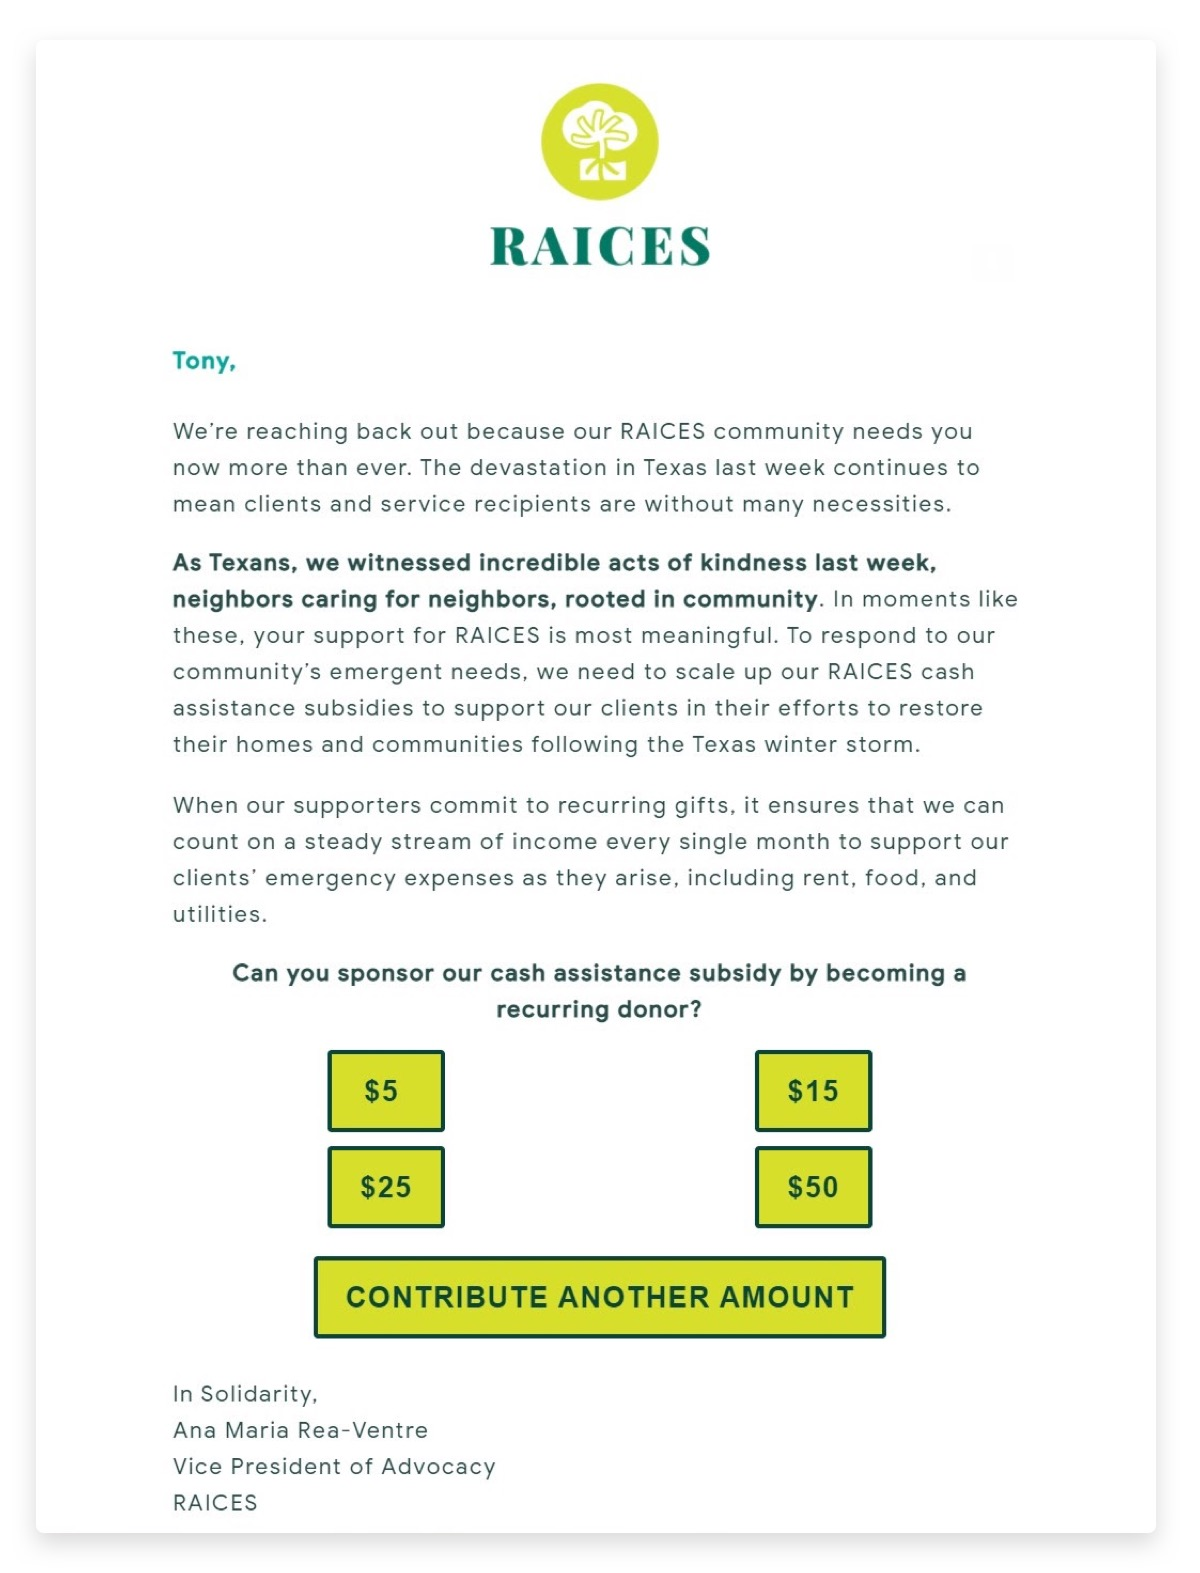 RAICES email with a donation form that has 5 buttons